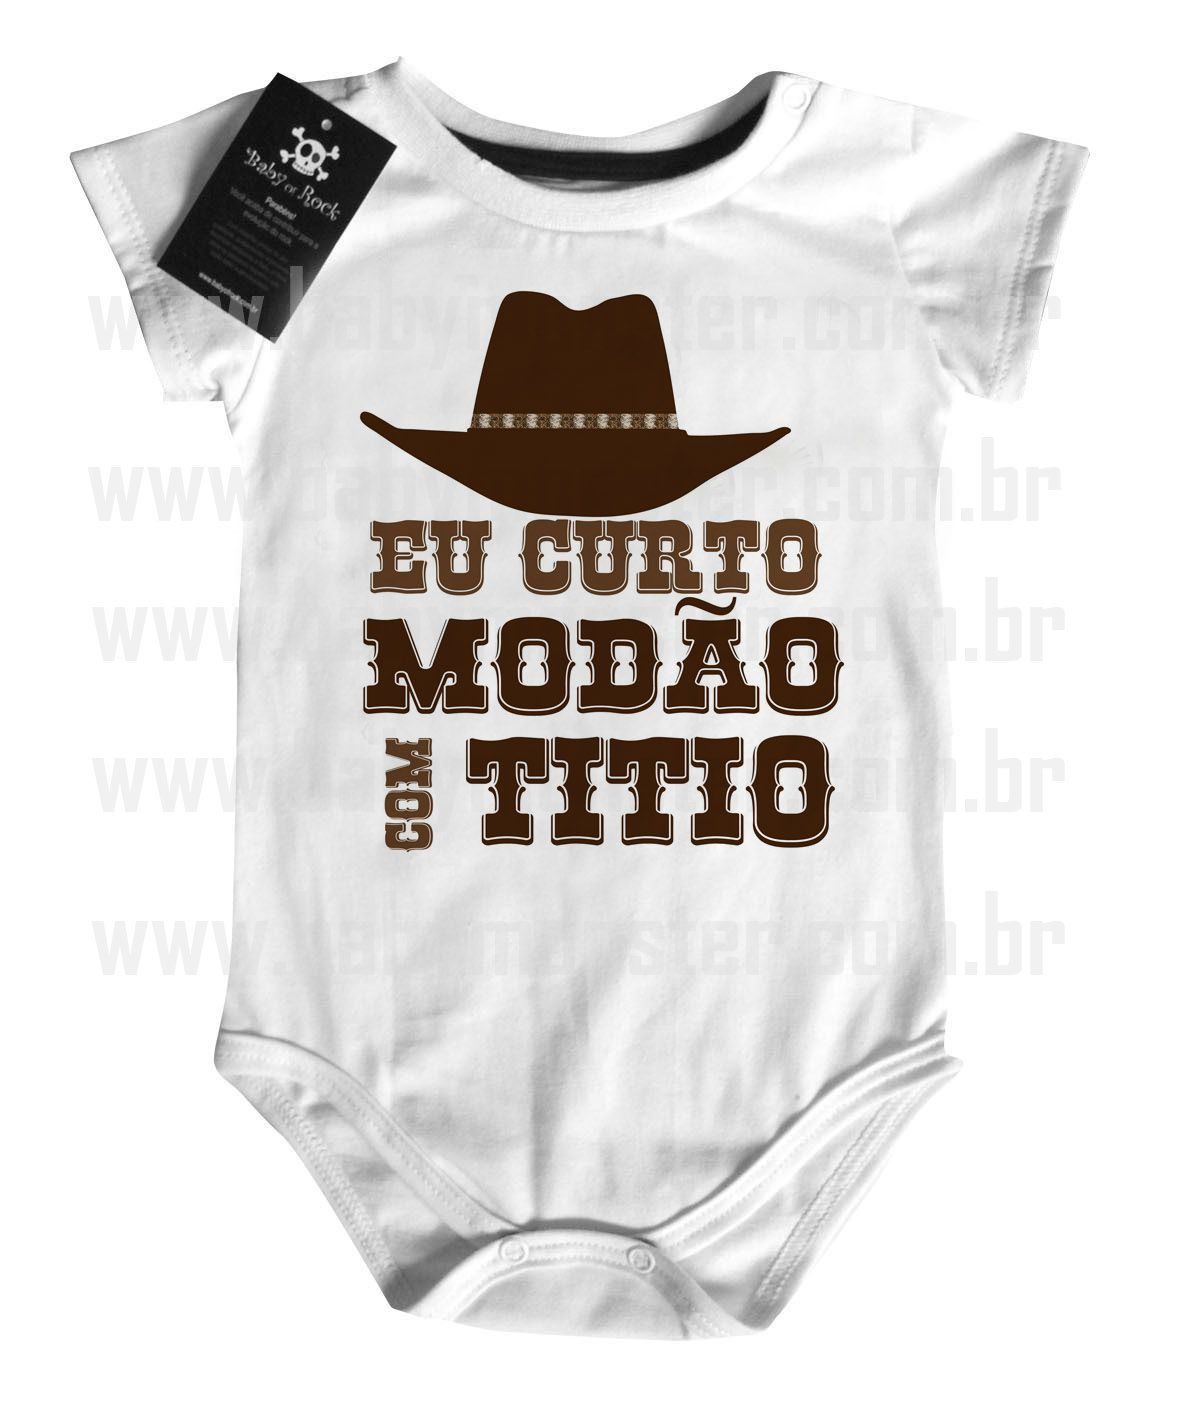 Body  Sertanejo Curto Modão com o Titio- White  - Baby Monster S/A